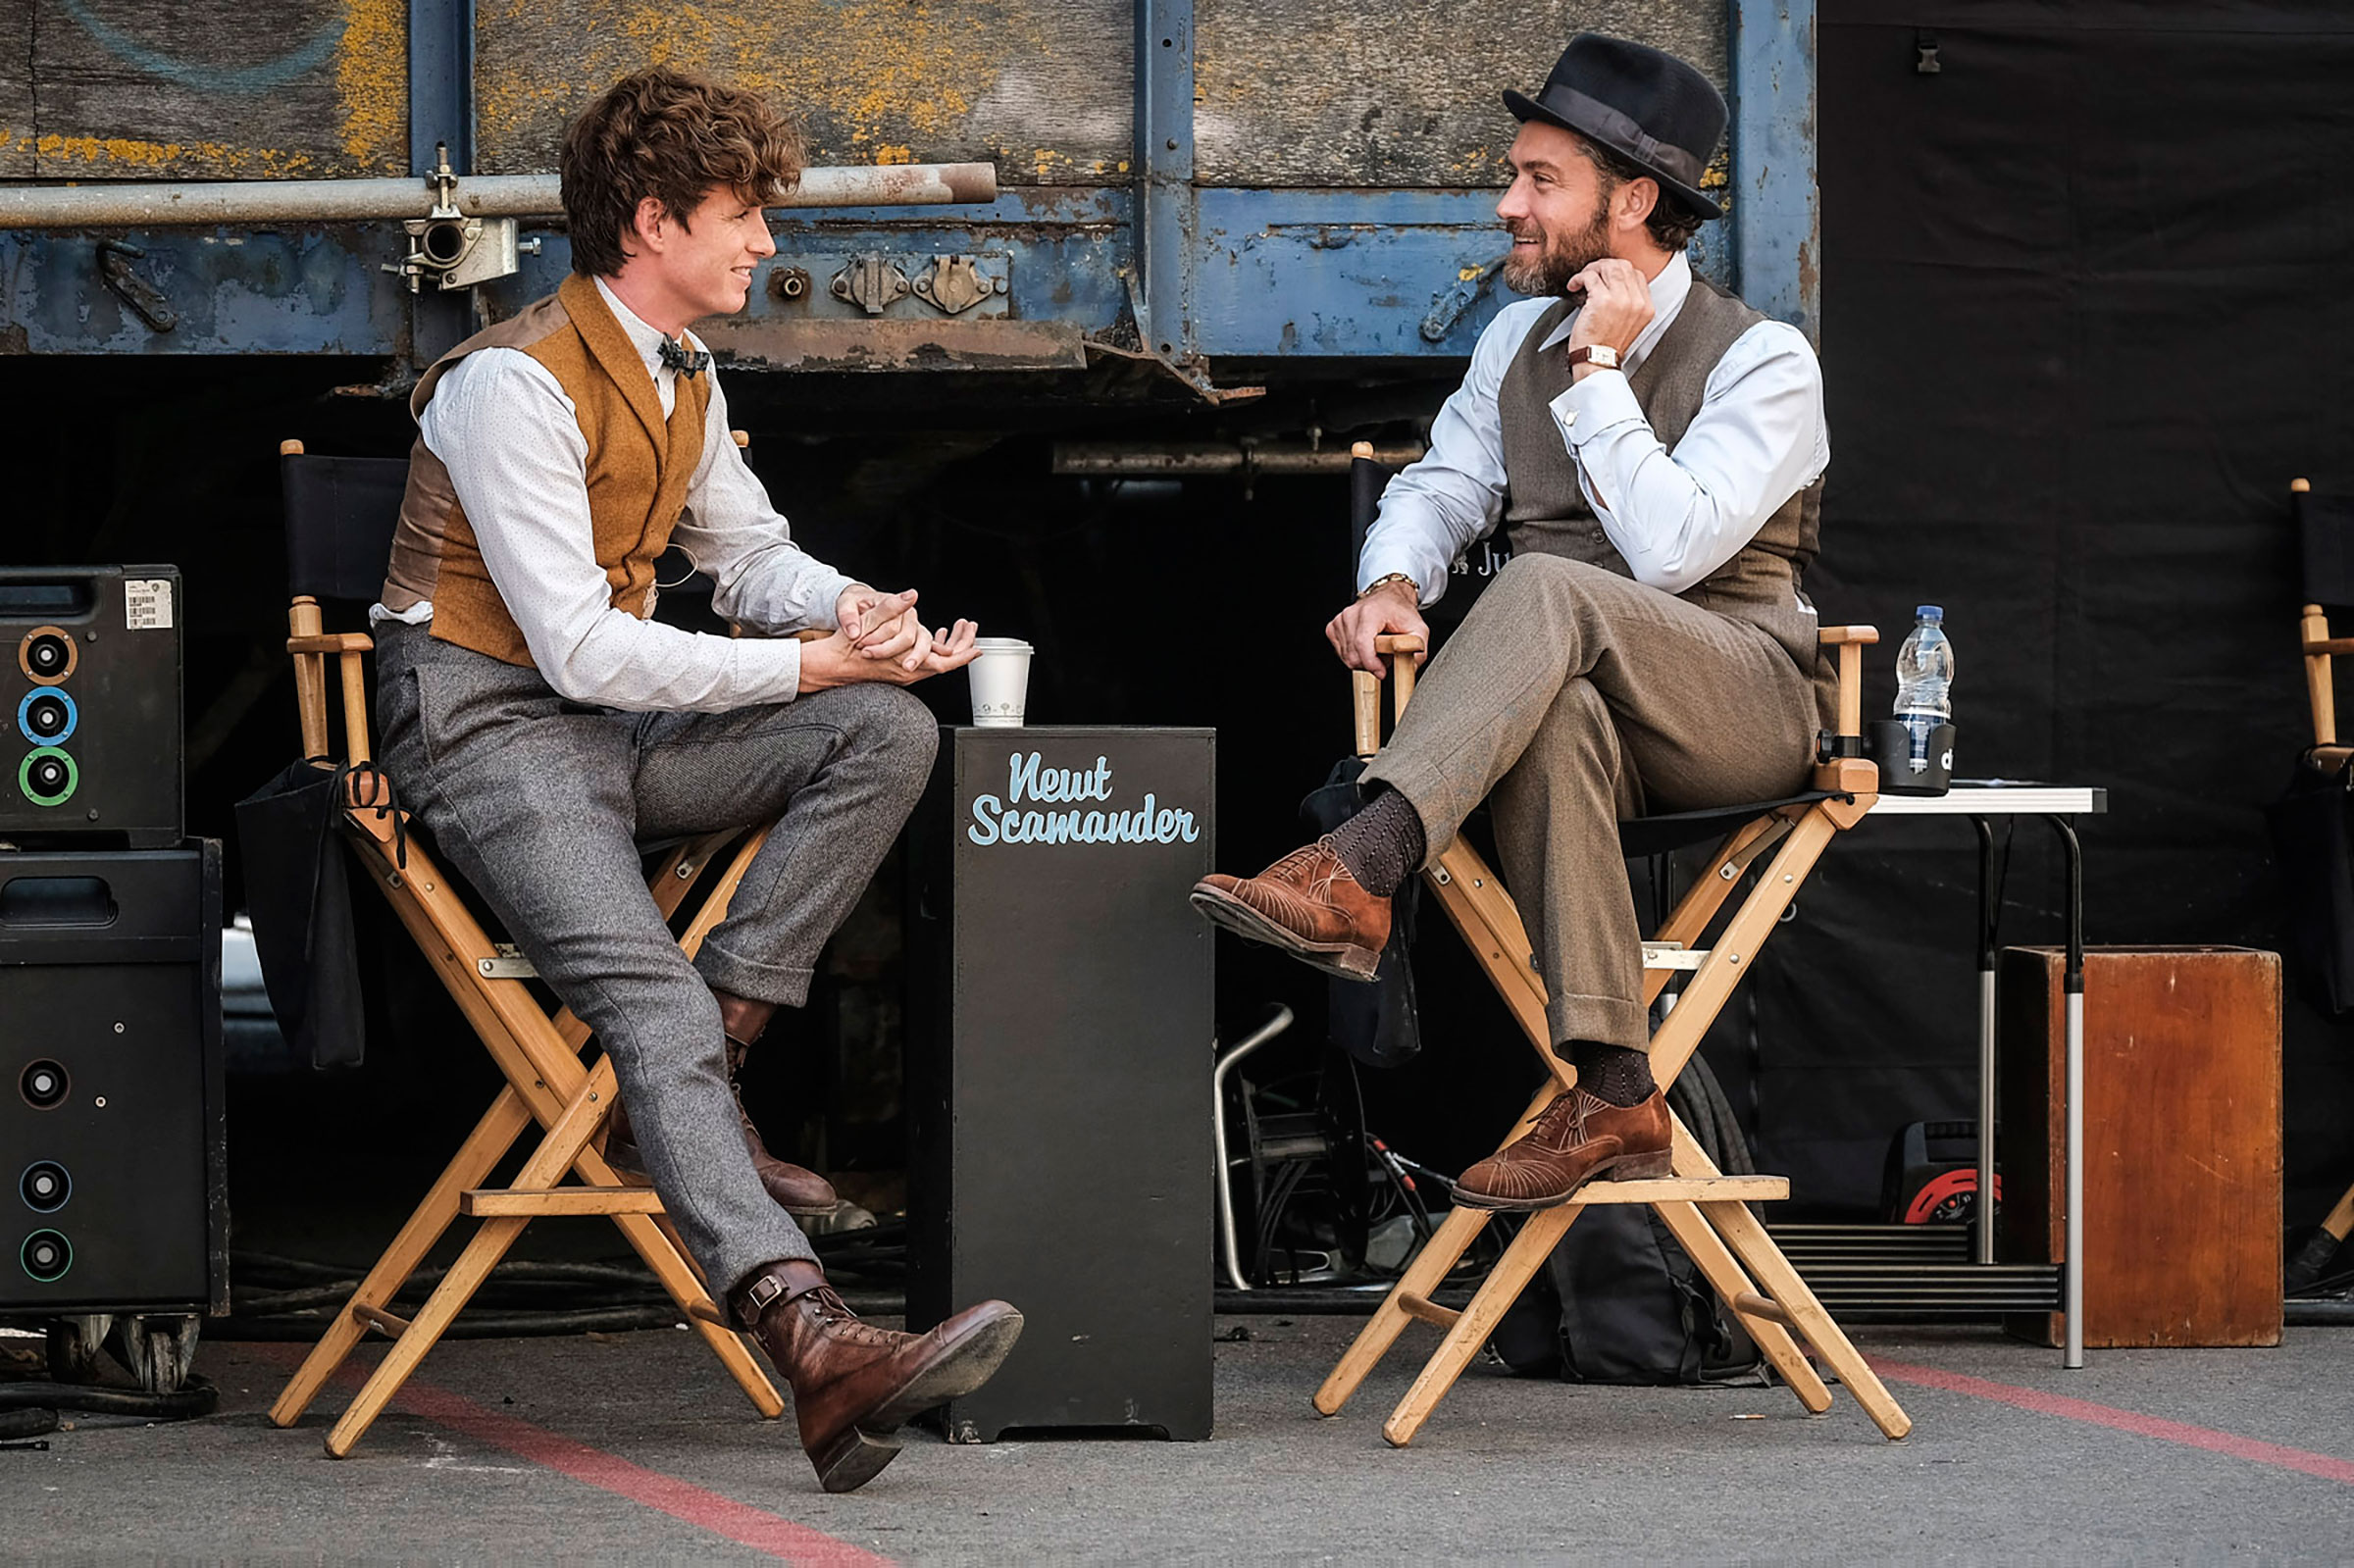 """Fantastic Beasts: The Crimes of Grindelwald"": Eddie Redmayne and Jude Law behind the scenes"